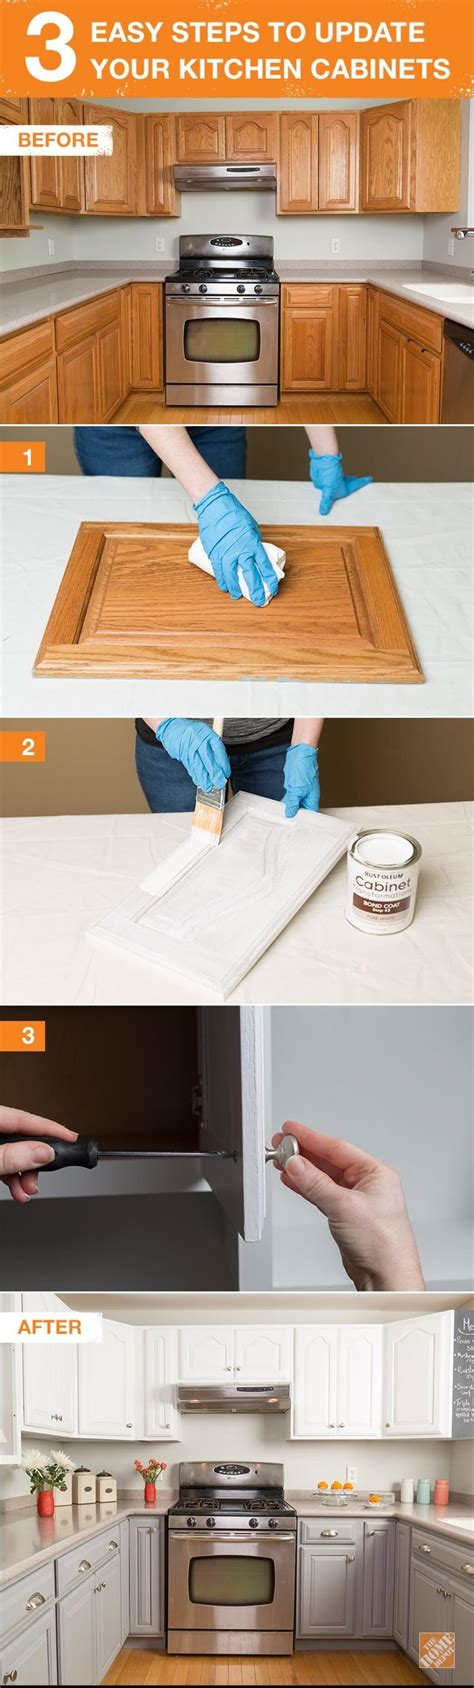 budget kitchen makeover ideas 25 before and after budget kitchen makeover